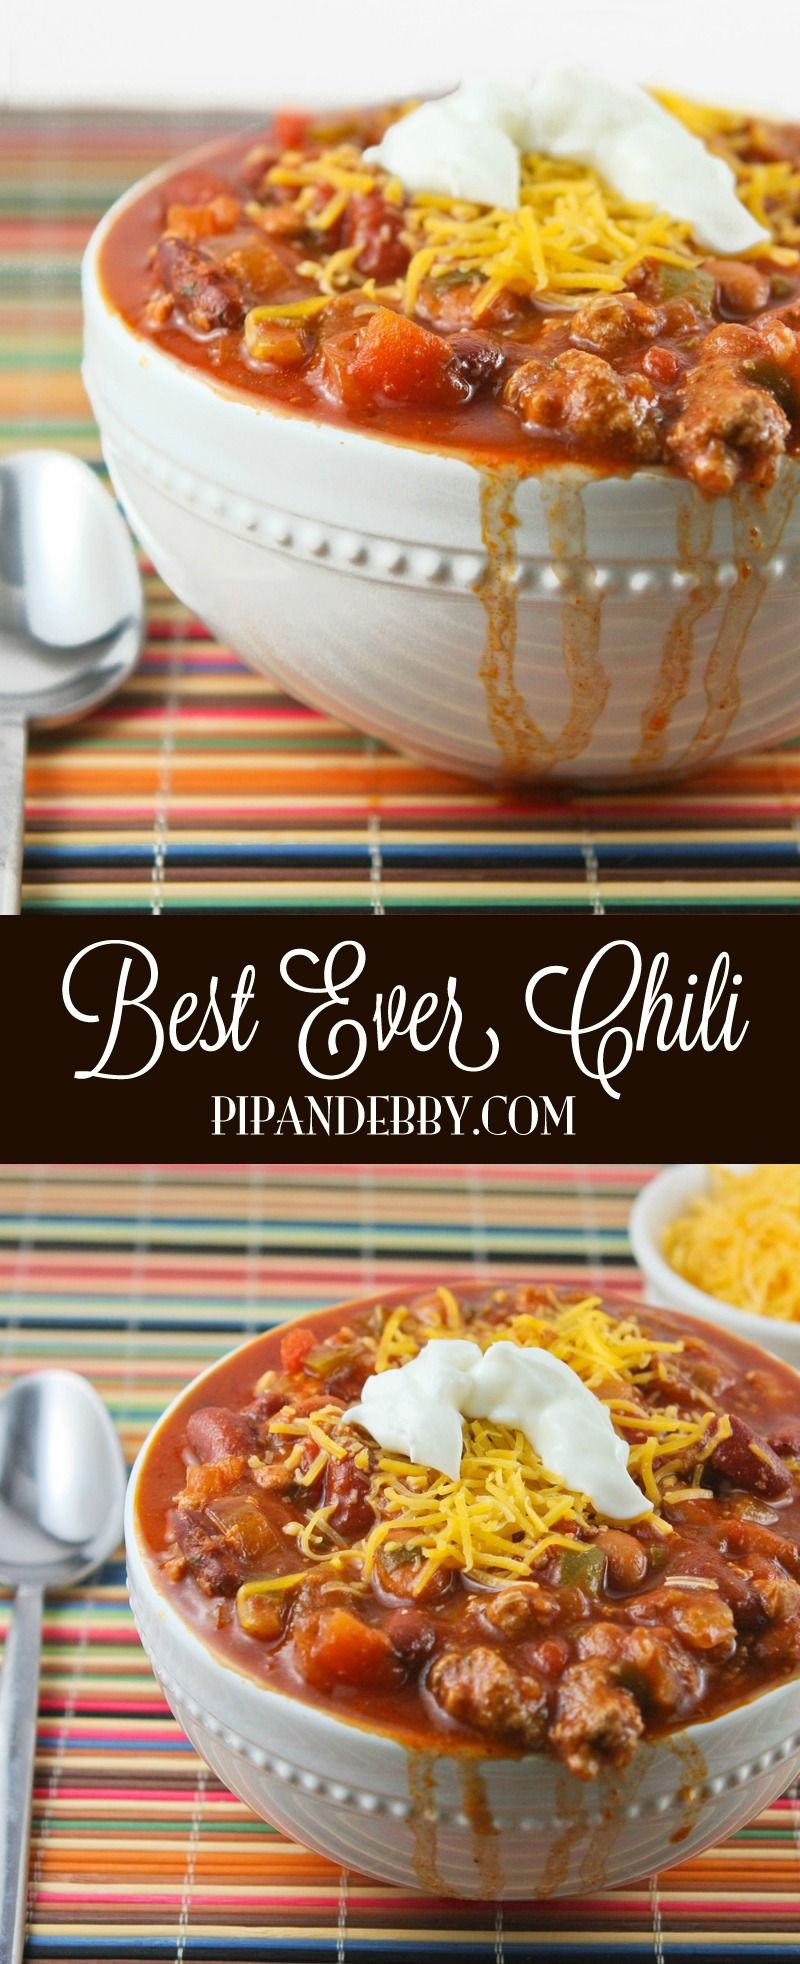 The Best Chili Recipe EVER! - pipandebby.com